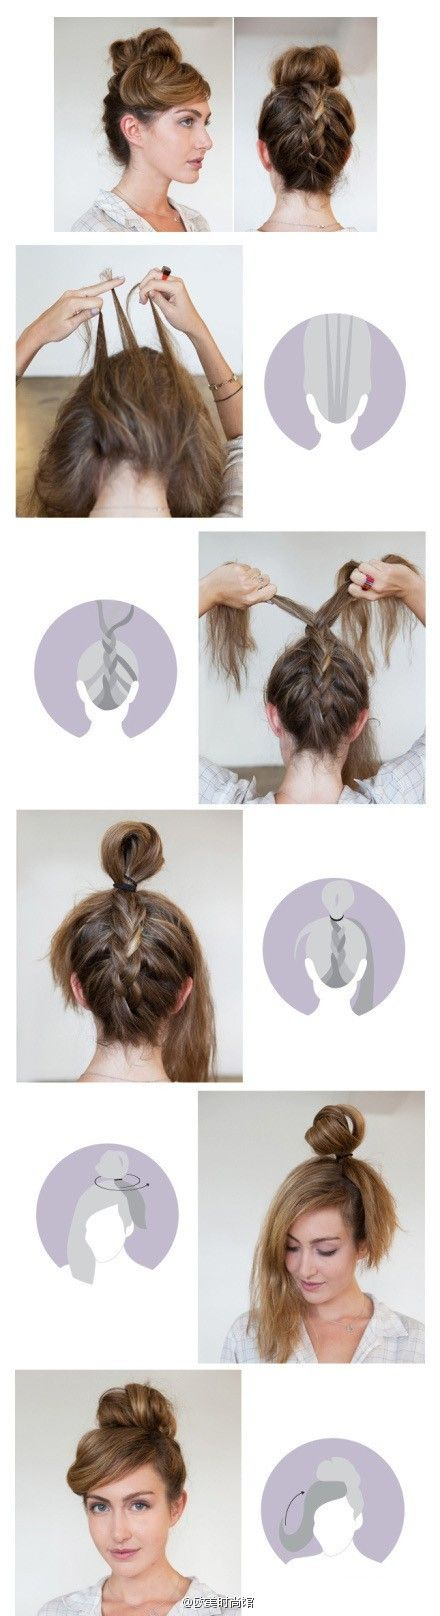 Stupendous How To Do A Reverse French Braid Top Knot Hair Styles Hair Beauty Schematic Wiring Diagrams Phreekkolirunnerswayorg